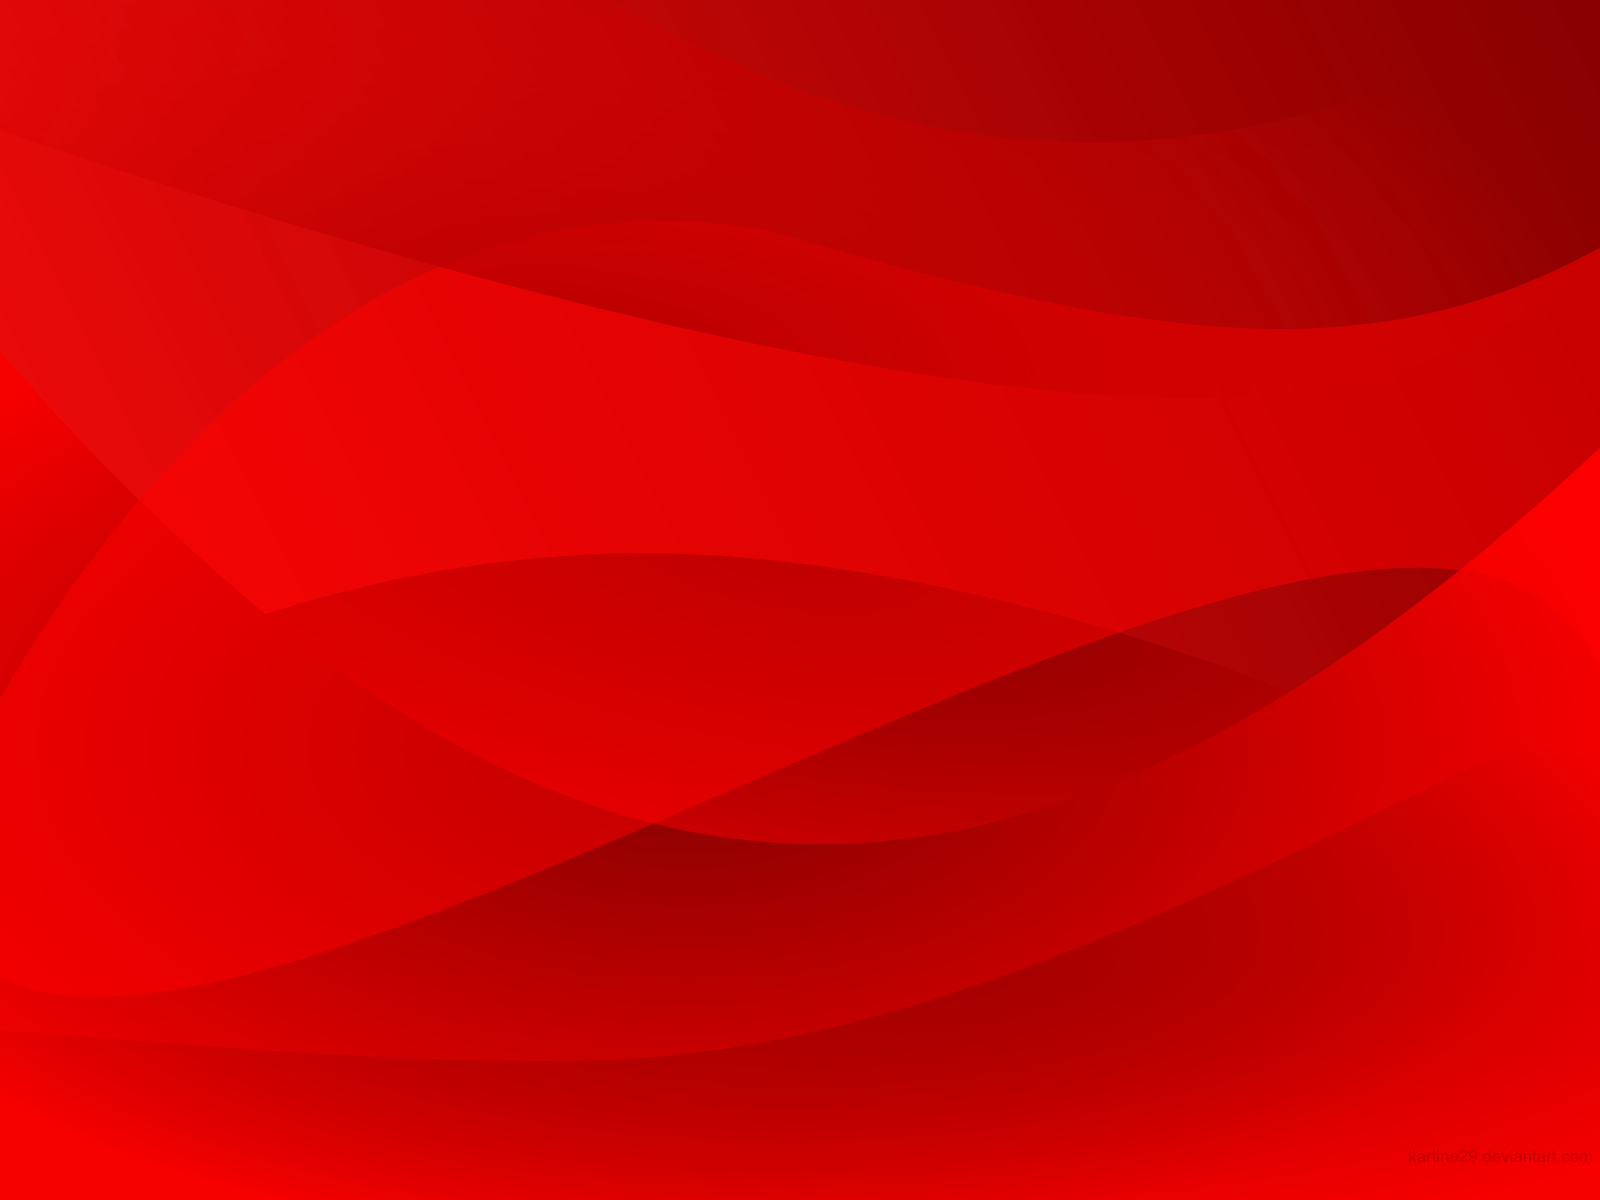 Red Abstract Wallpapers - Wallpaper Cave